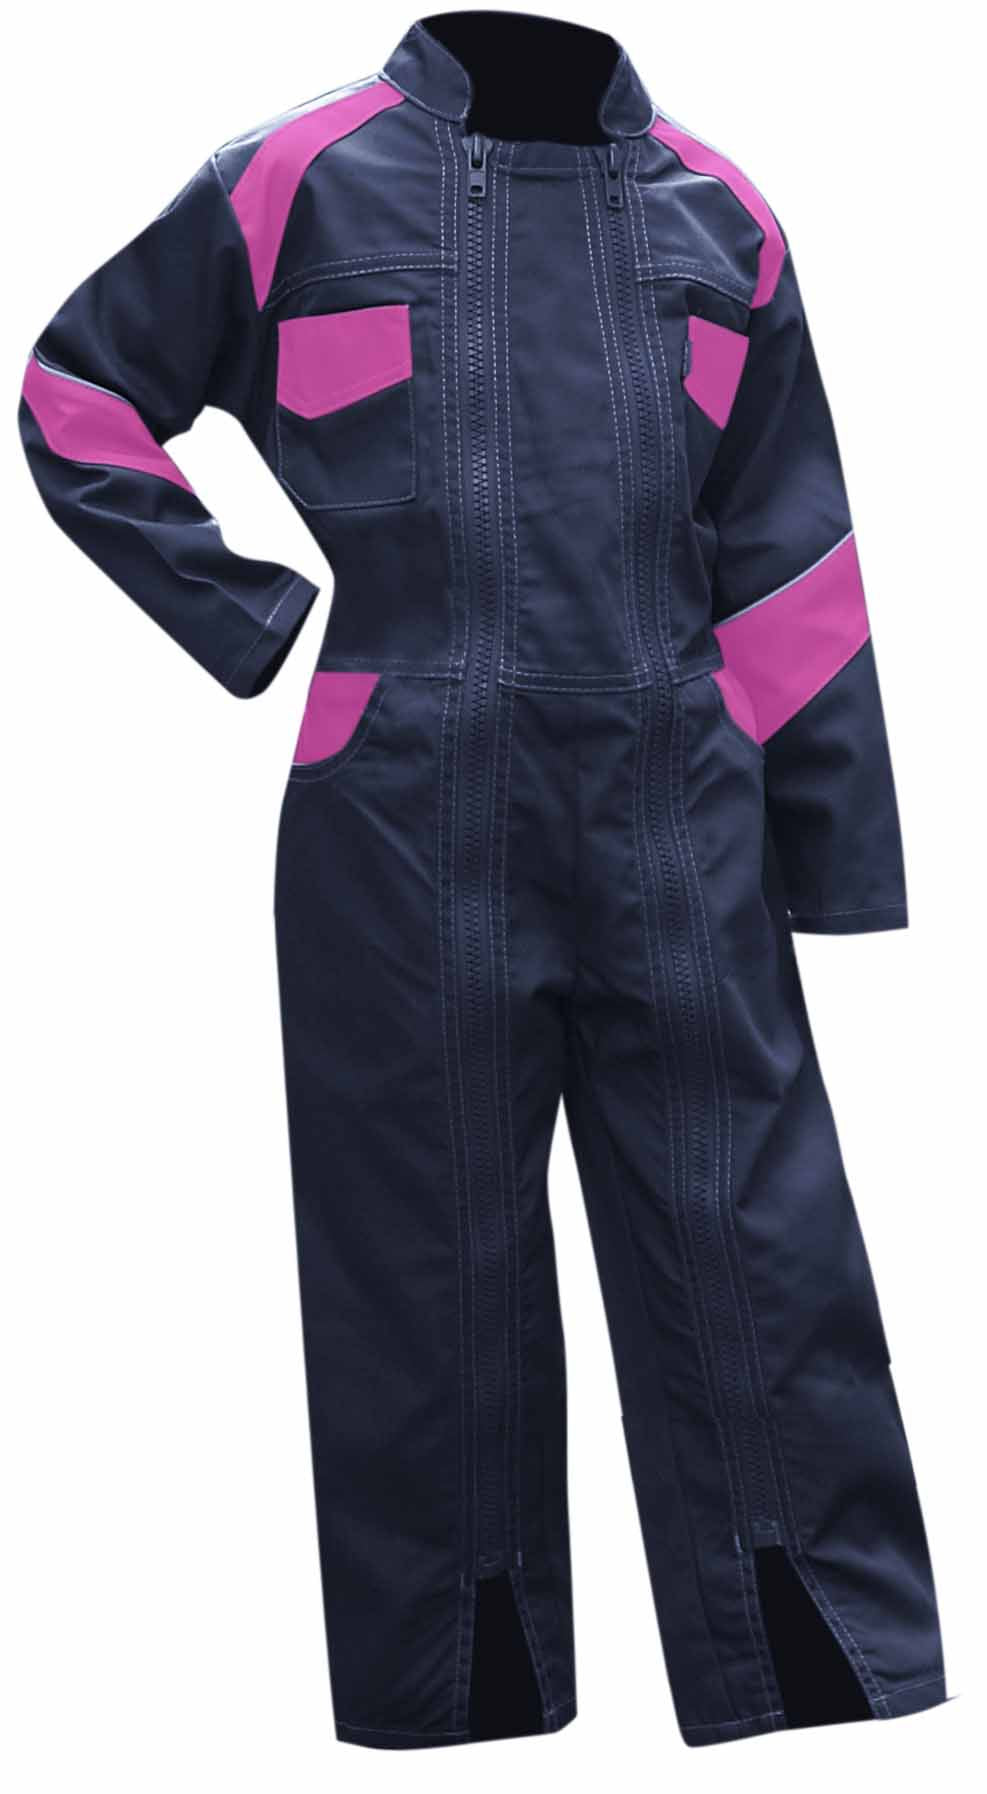 LMA Workwear Fleur Two Tone Kids Coverall